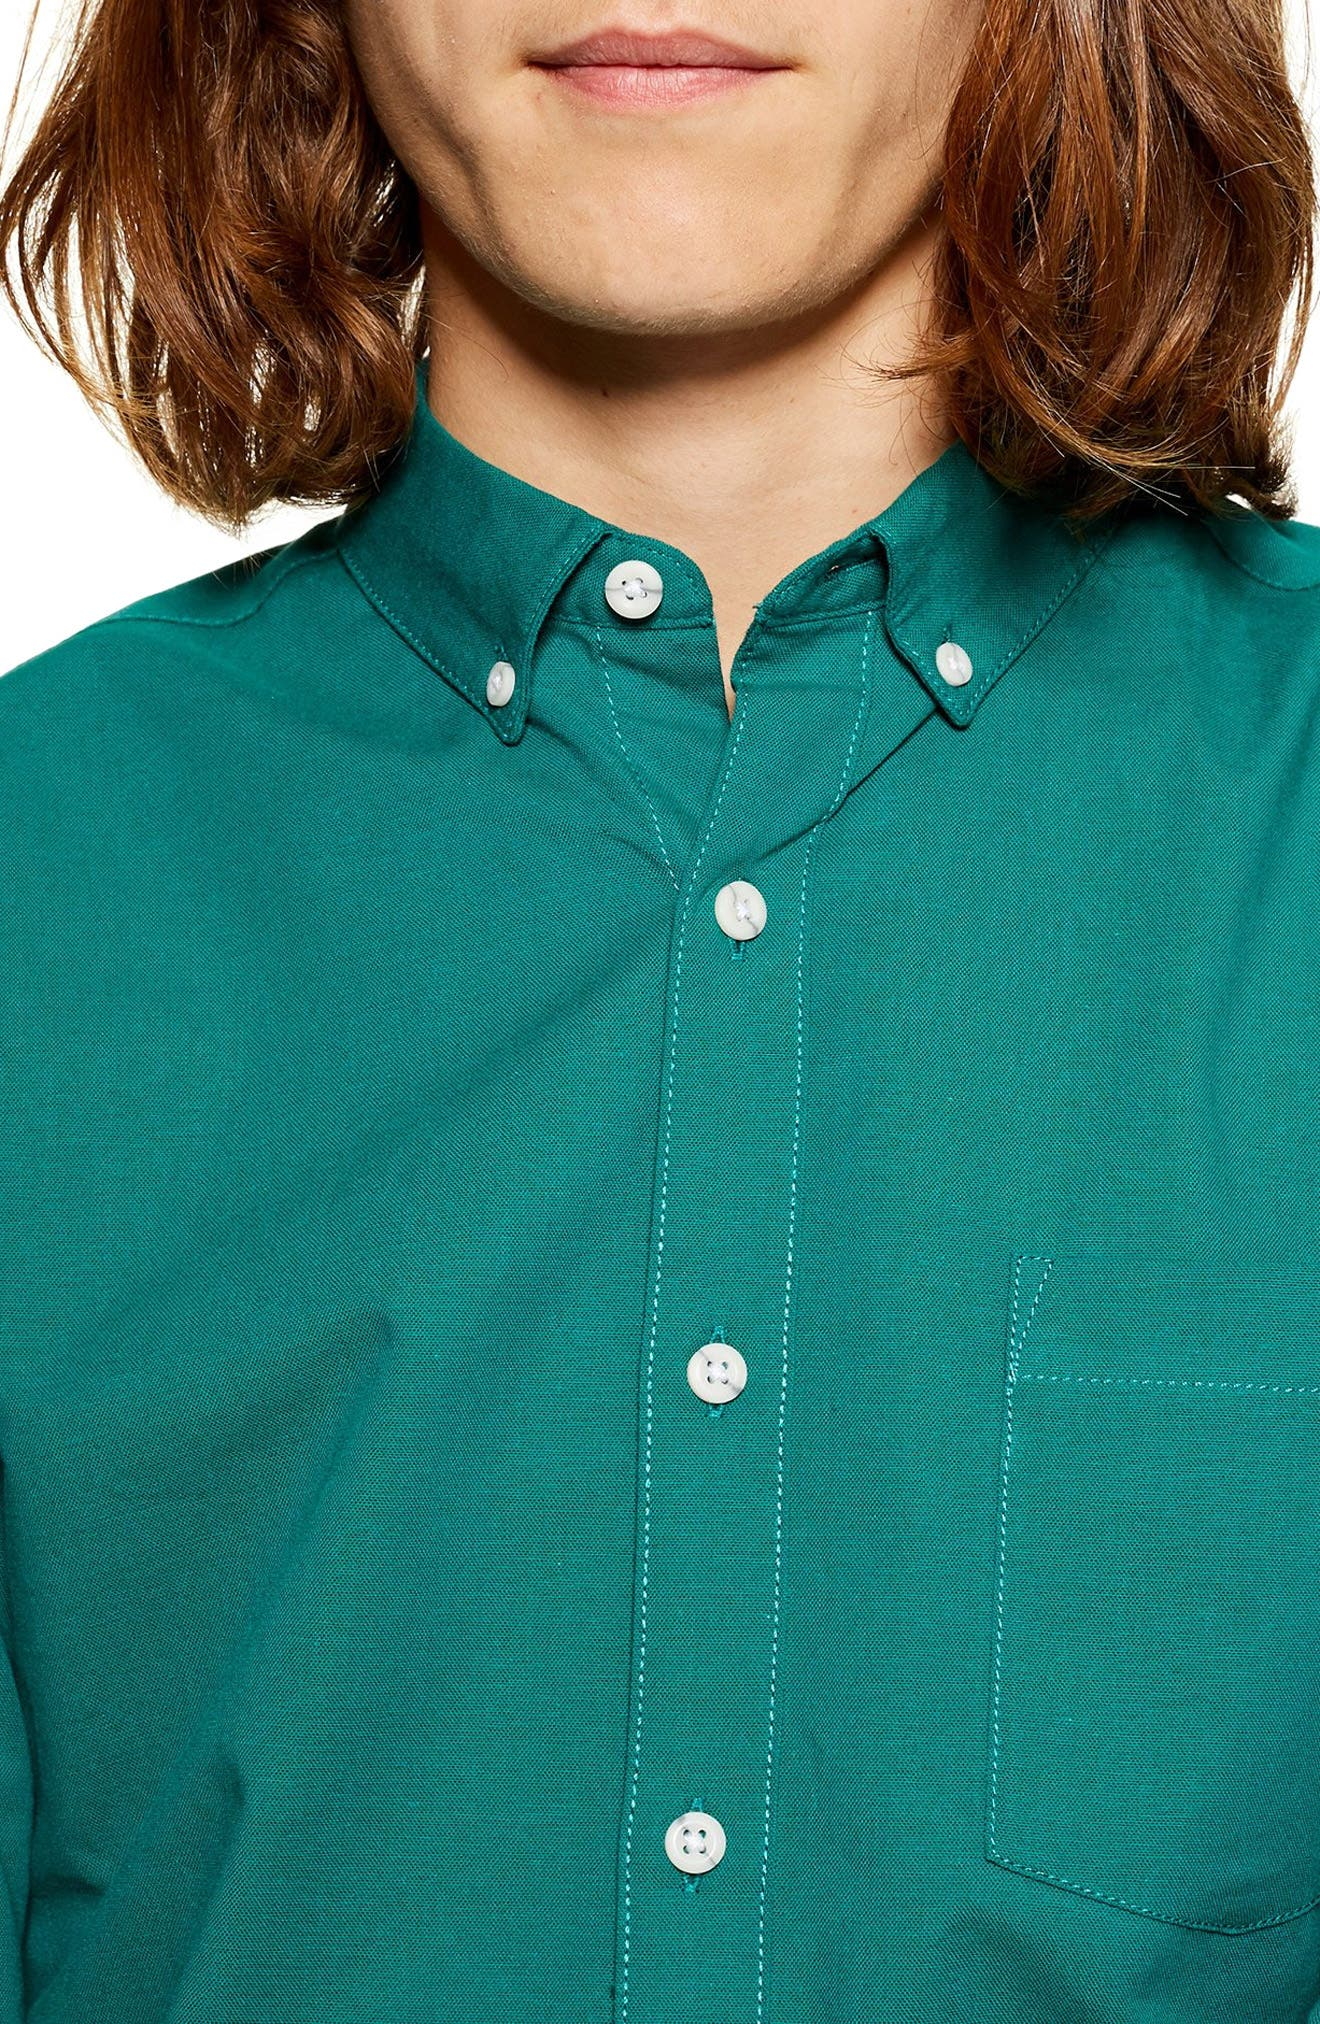 Classic Fit Oxford Shirt,                             Alternate thumbnail 3, color,                             BLUE